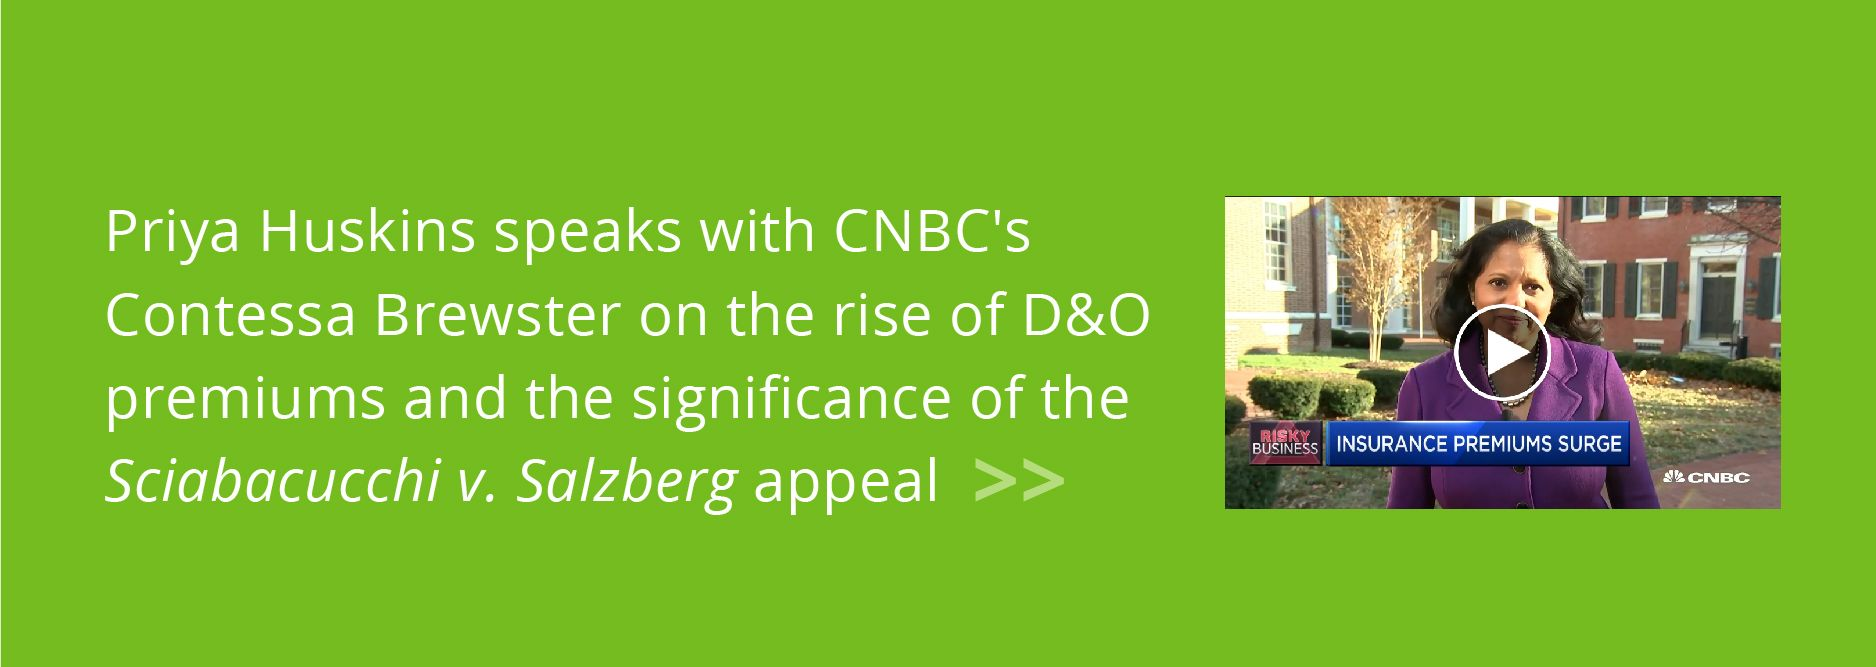 Priya Huskins speaks with CNBC's Contessa Brewster on the rise of D&O premiums and the significance of the Sciabacucchi v. Salzberg appeal